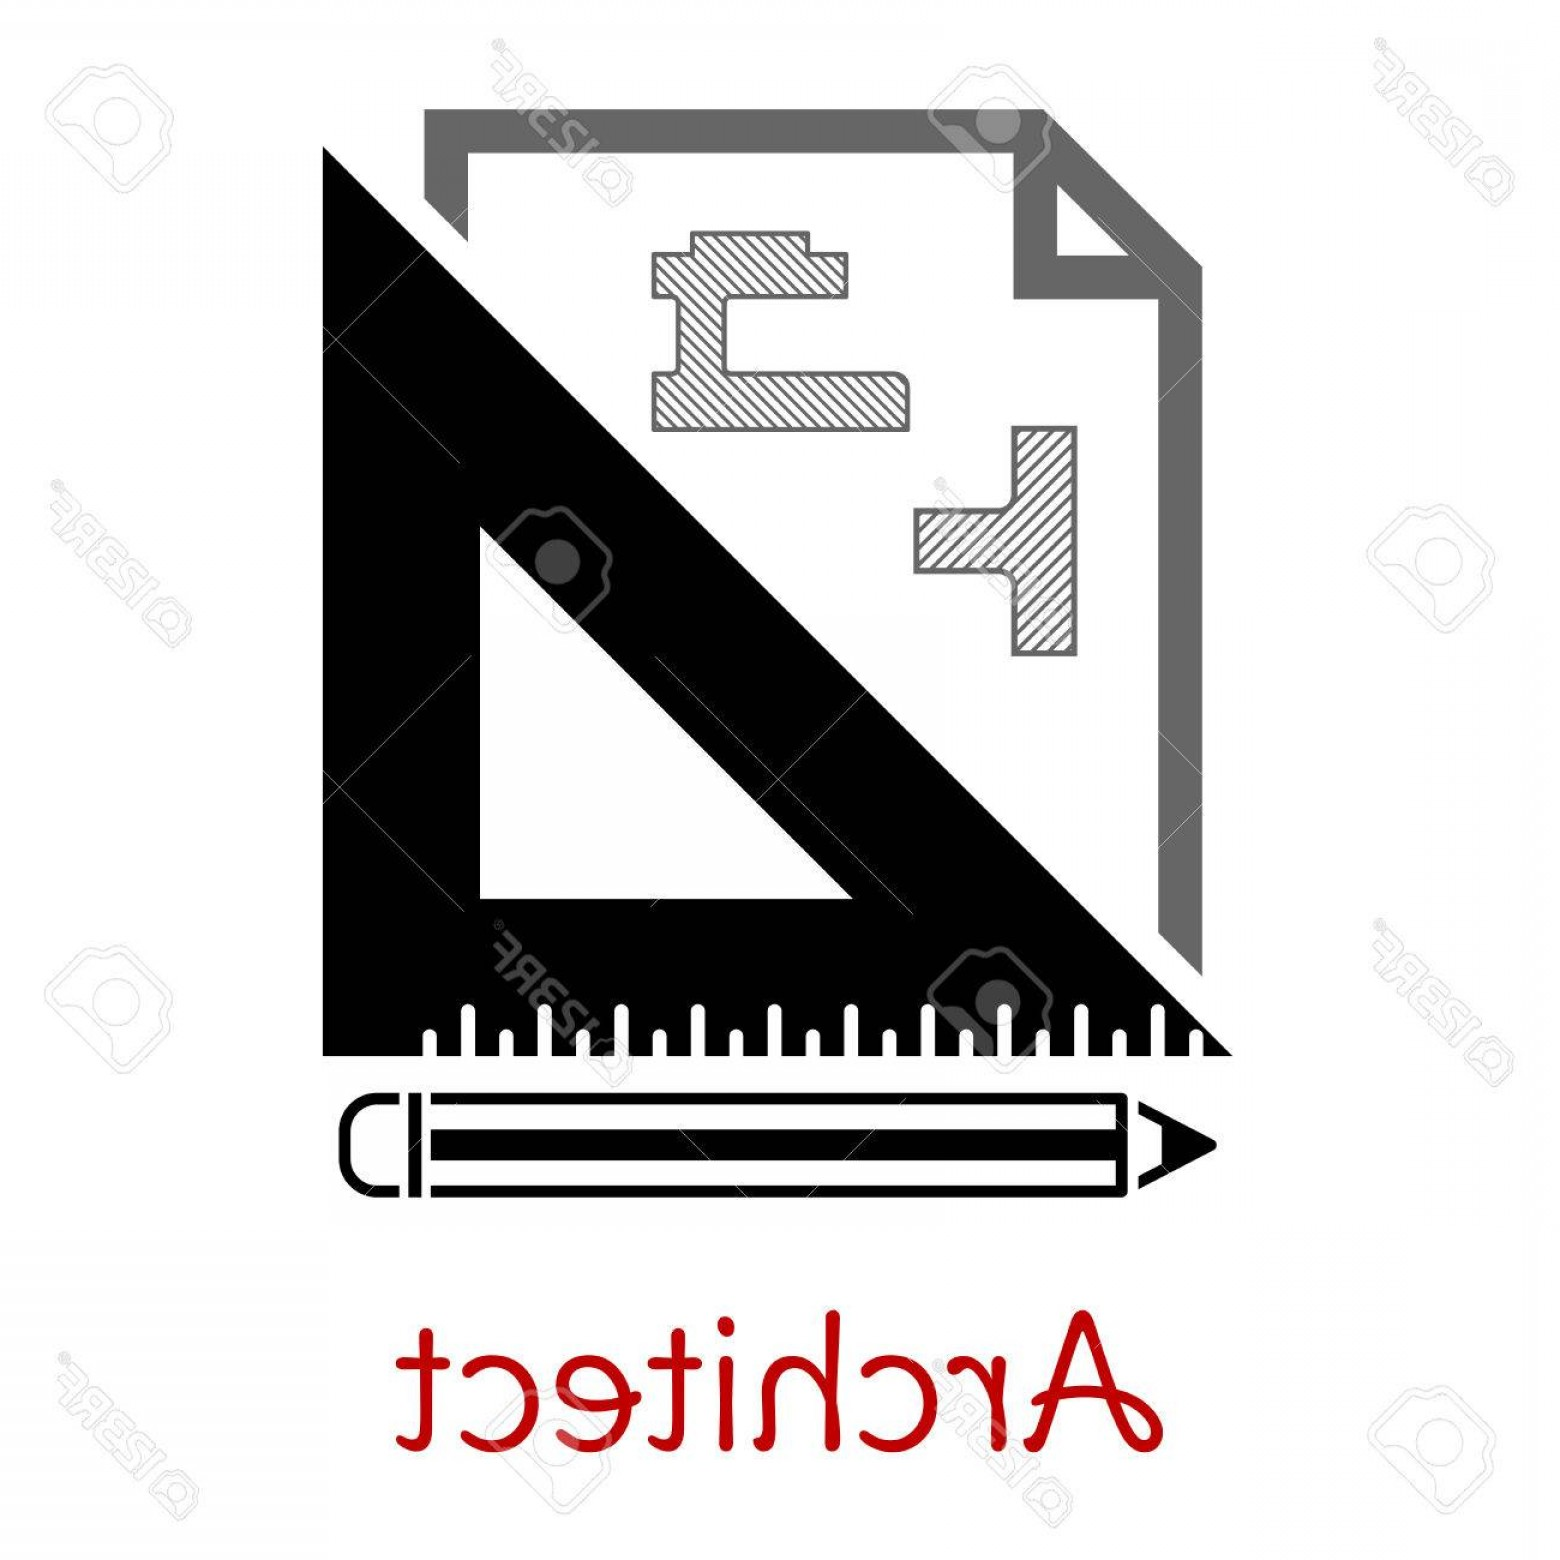 Residential Blueprint Vector Black: Photostock Vector Black And White Architect Icon With A Building Blueprint Right Angle Set Square And Pencil With Text